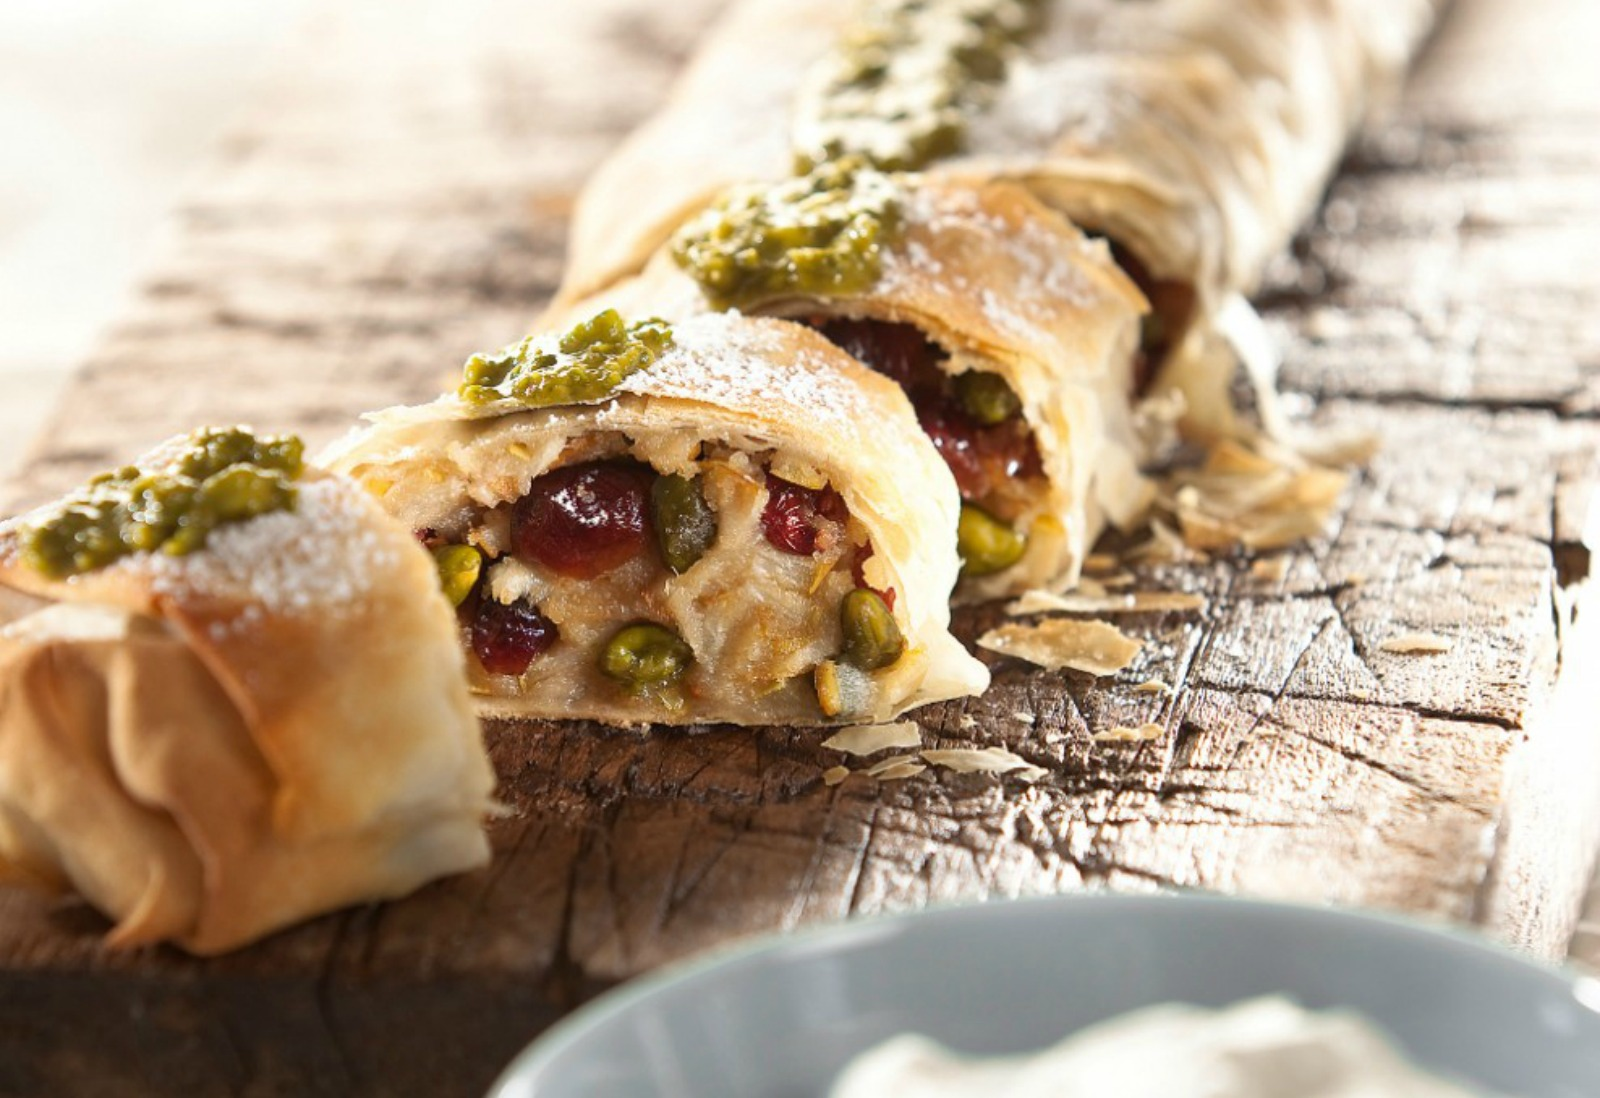 Vegan Pear Strudel With Pistachio Pesto with topping